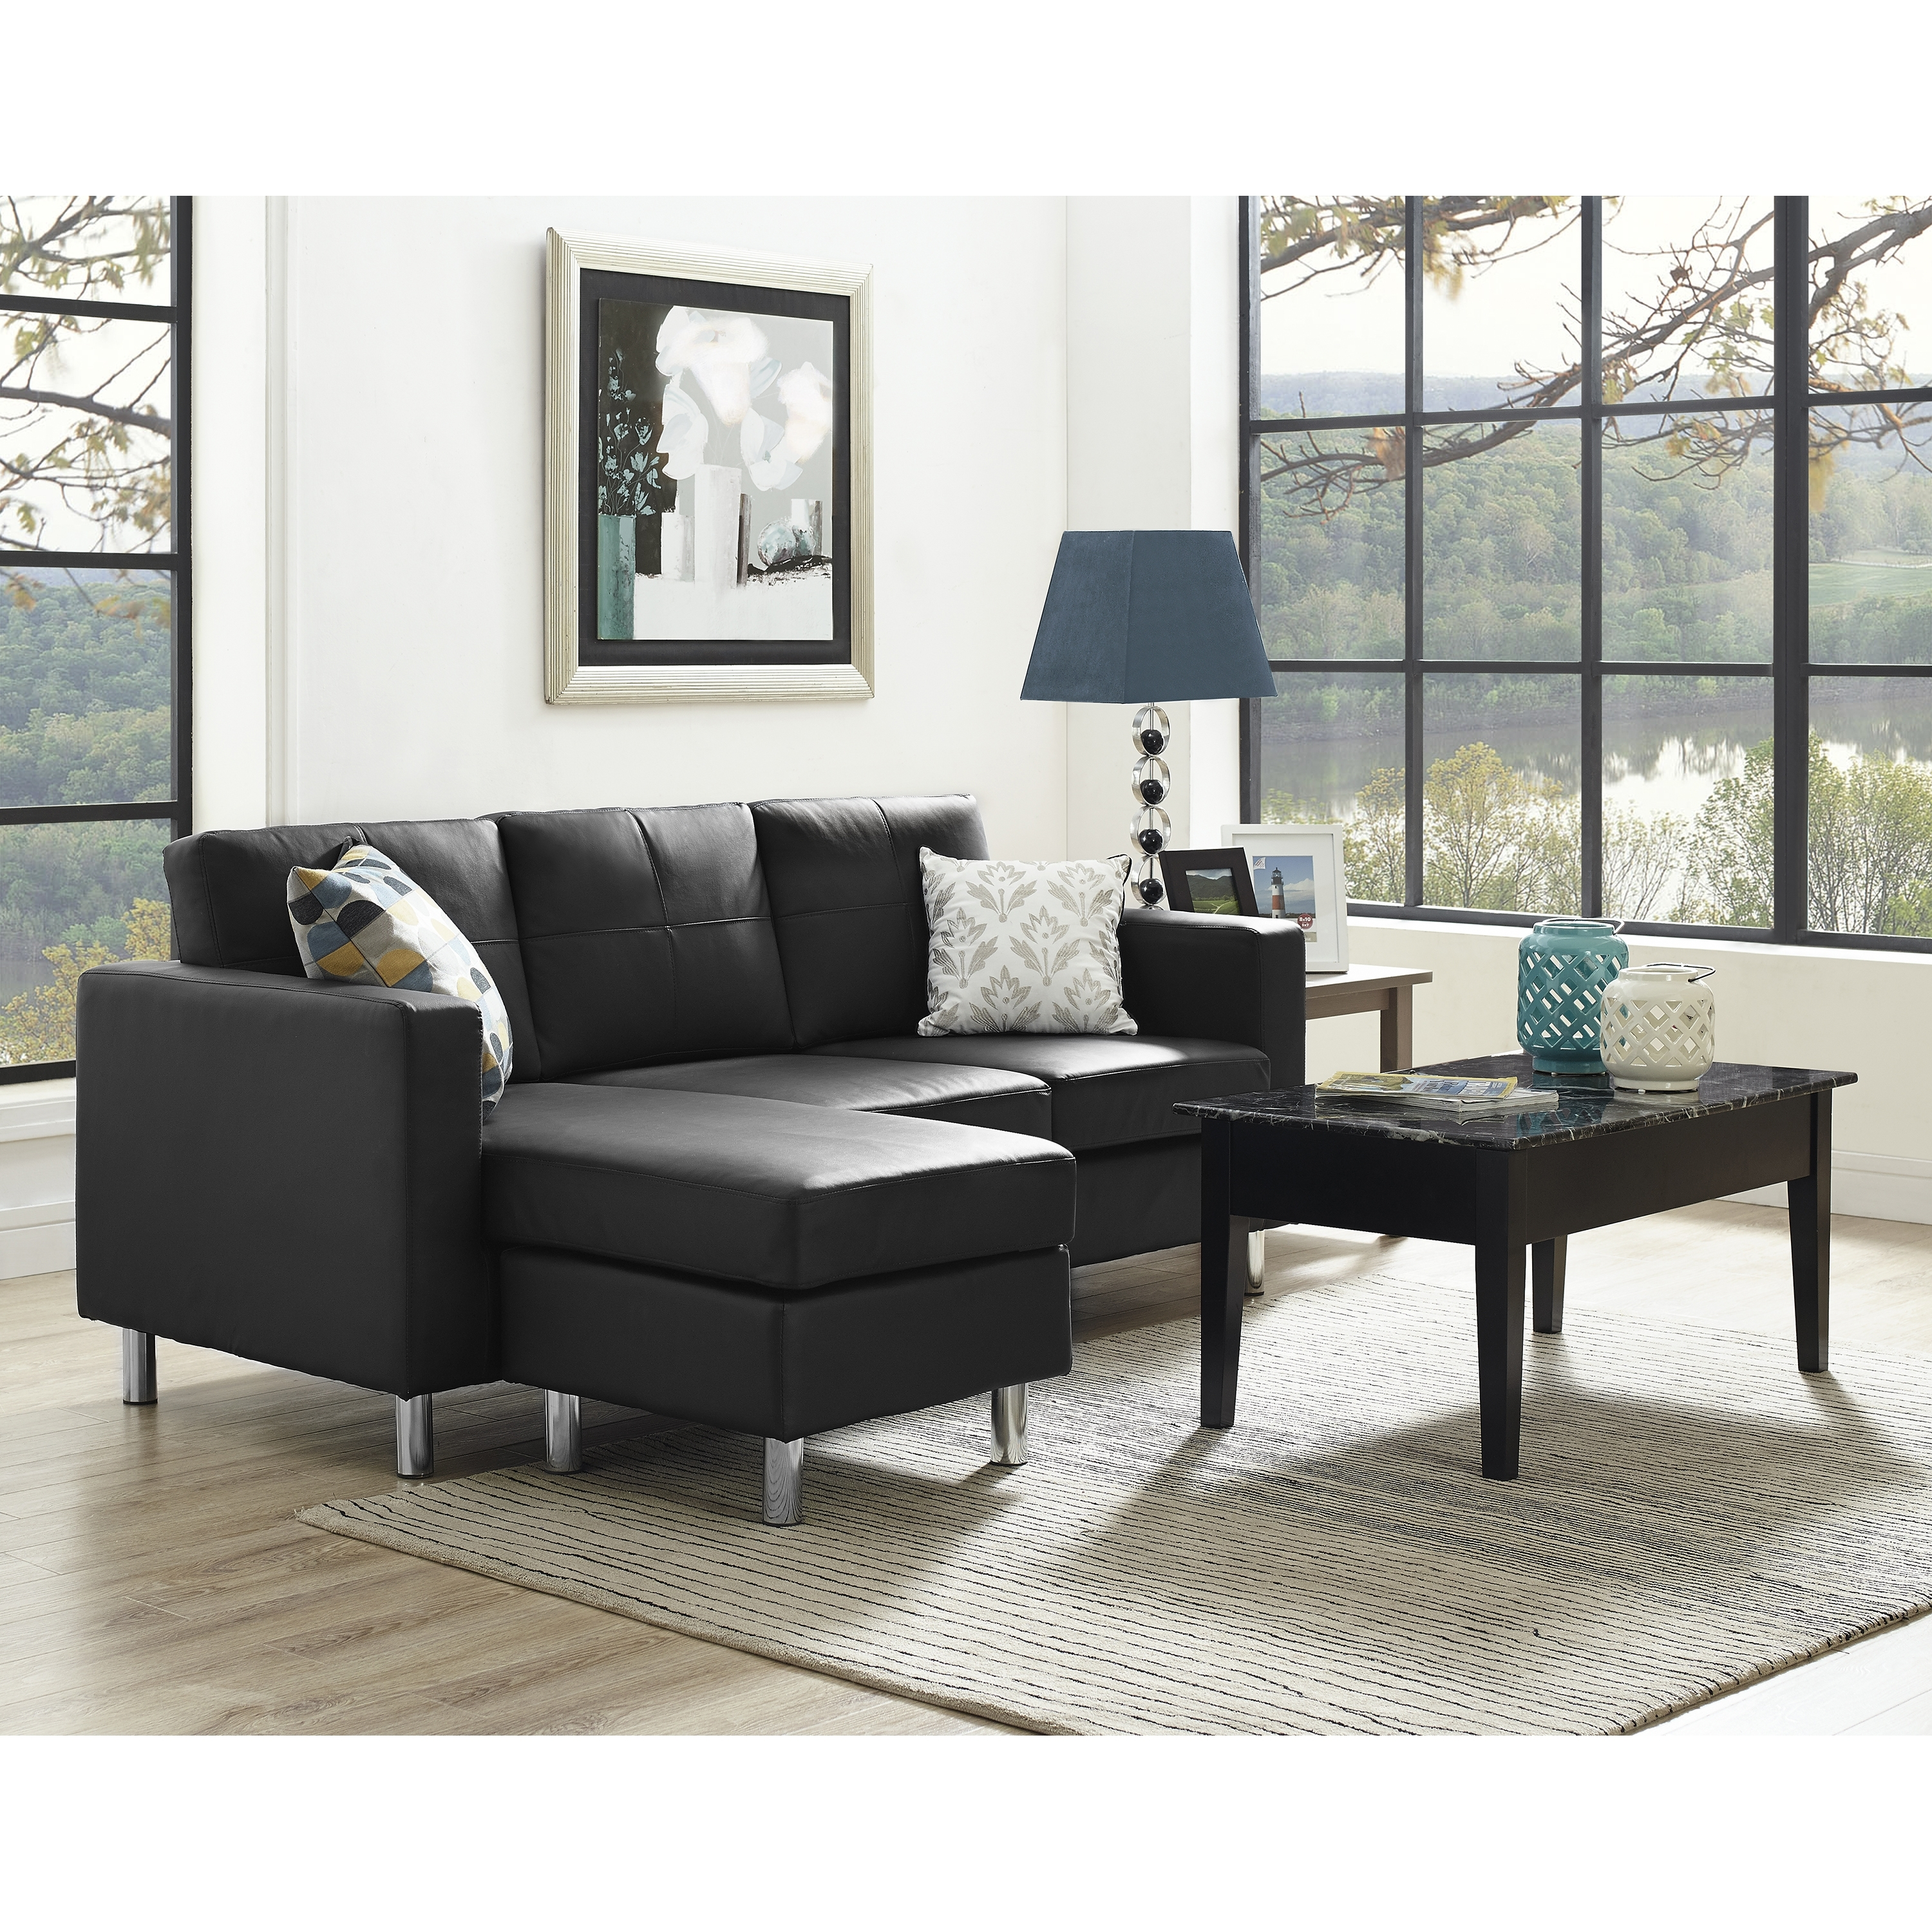 Best Sears Sectional Sofa 79 In Costco Leather Sectional Sofa With within Sectional Sofas At Sears (Image 1 of 15)